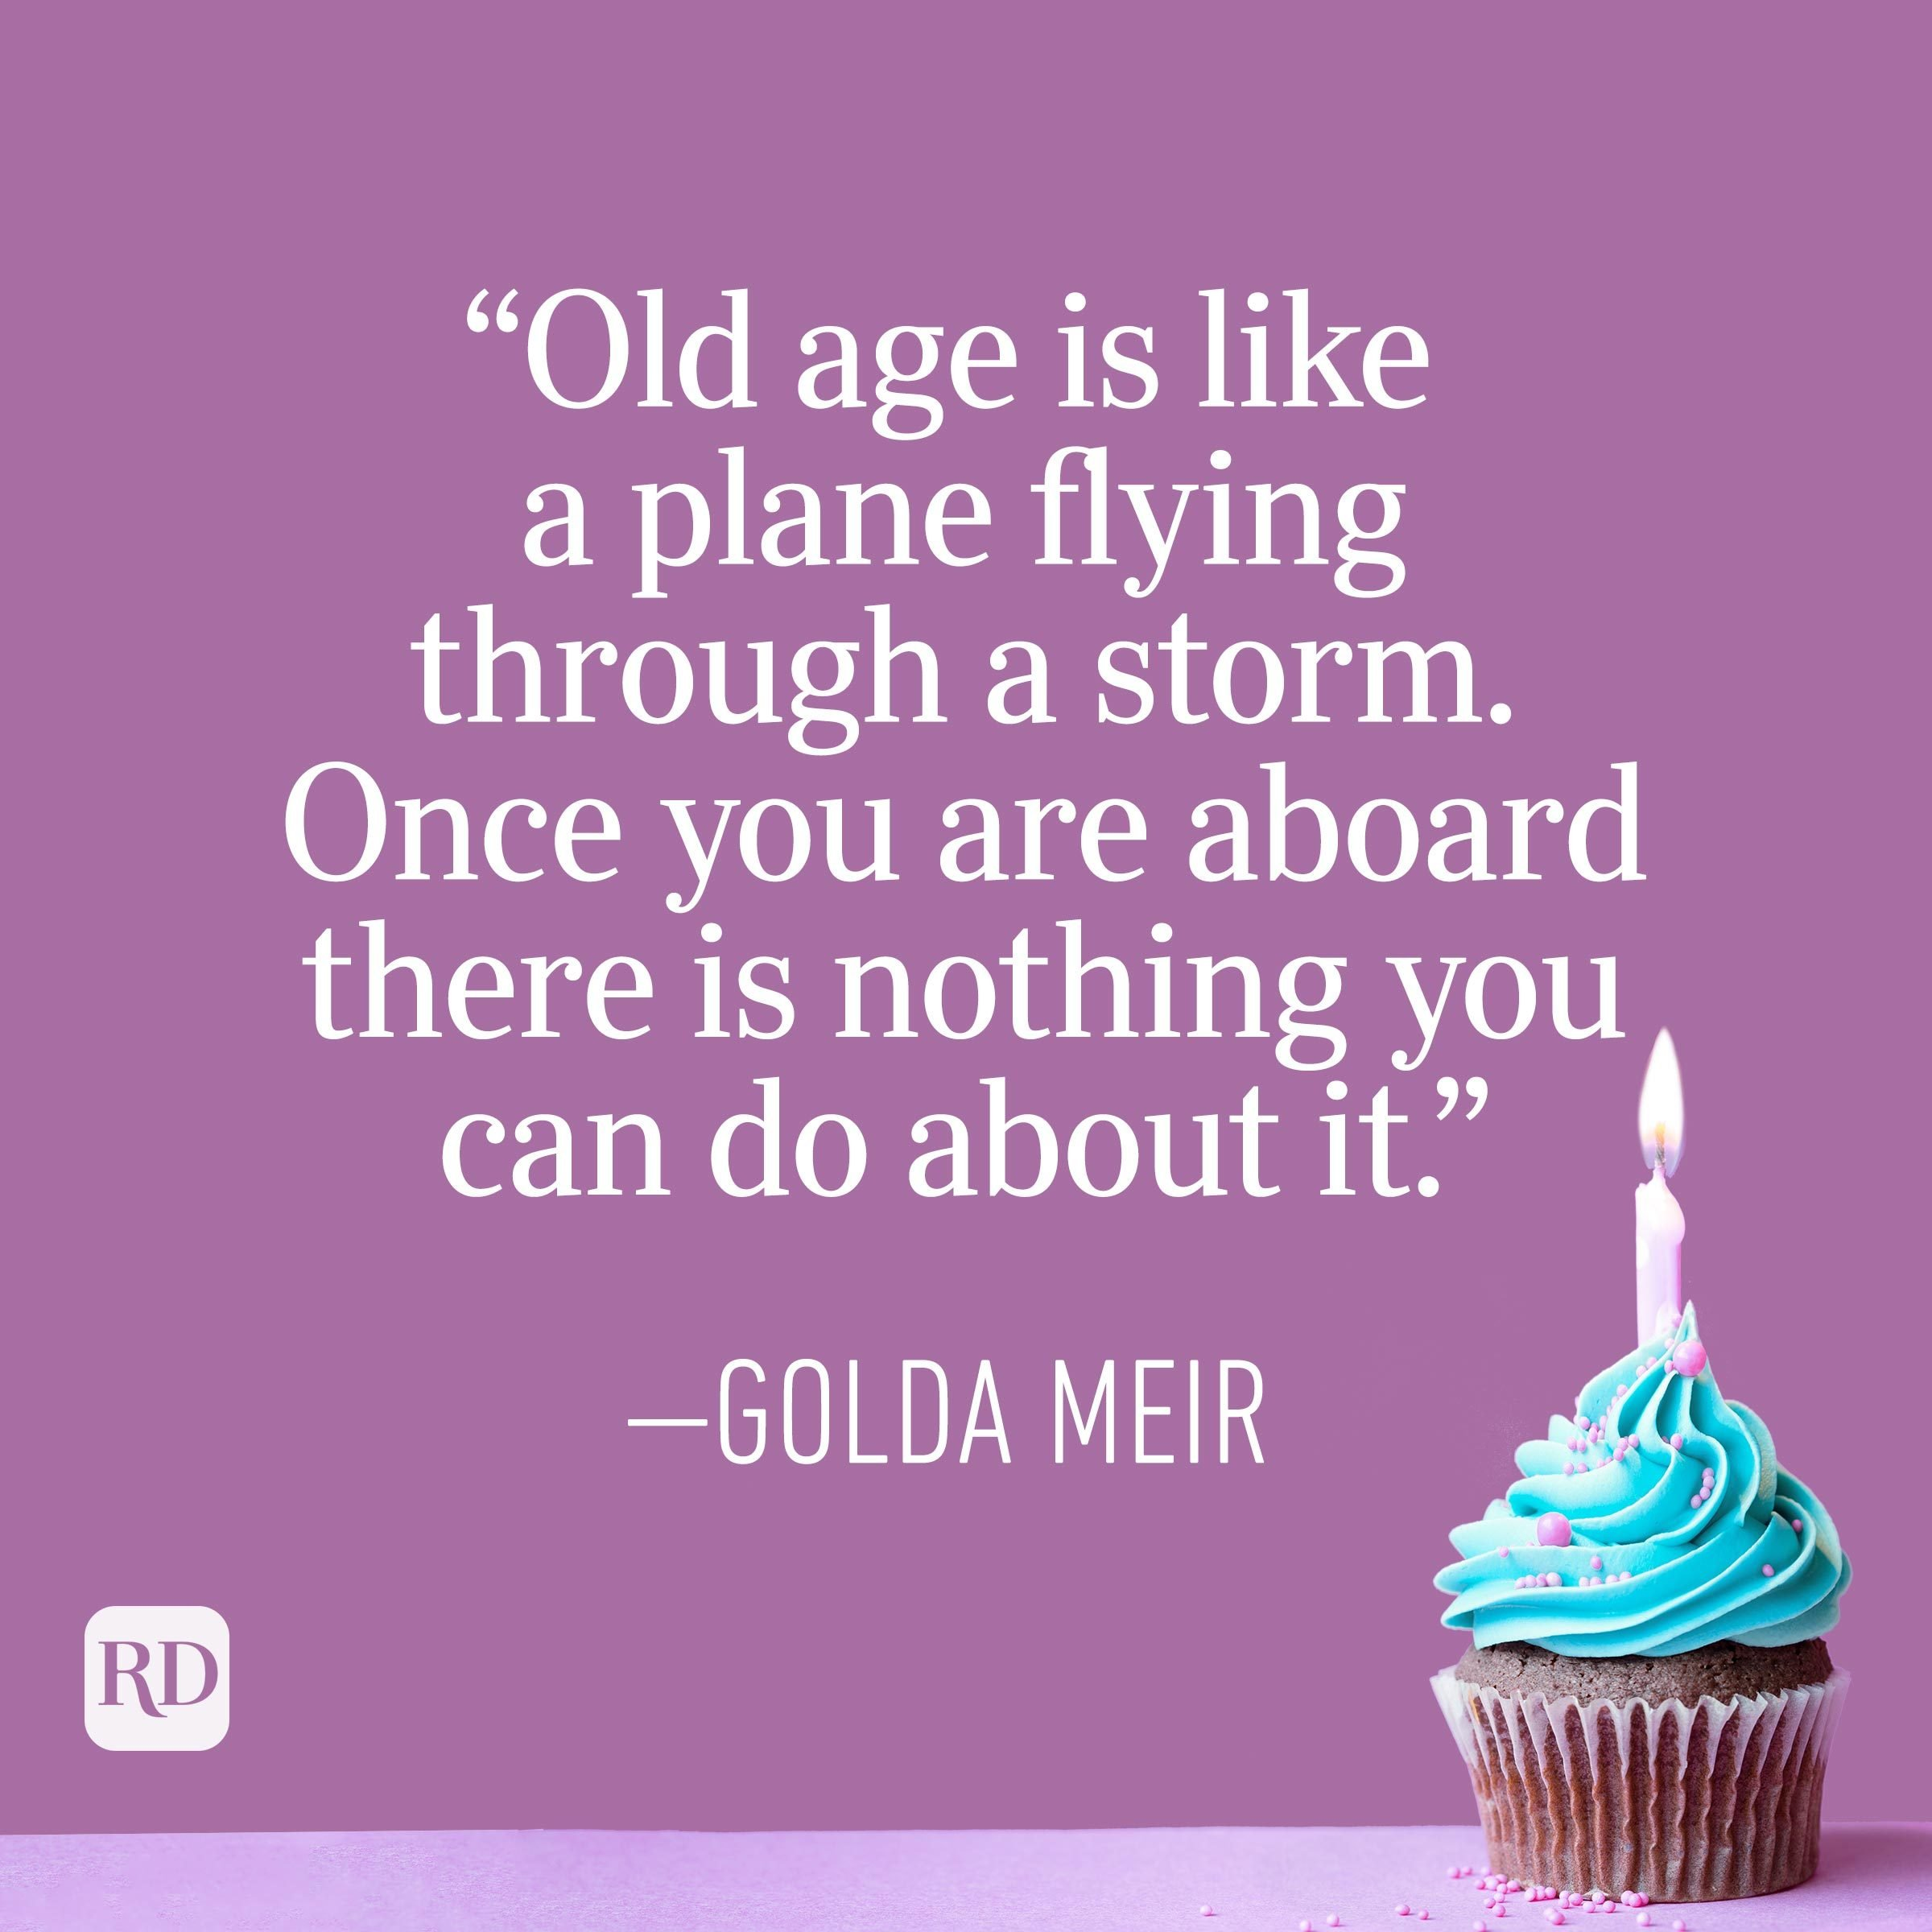 """""""Old age is like a plane flying through a storm. Once you are aboard there is nothing you can do about it."""" —Golda Meir"""